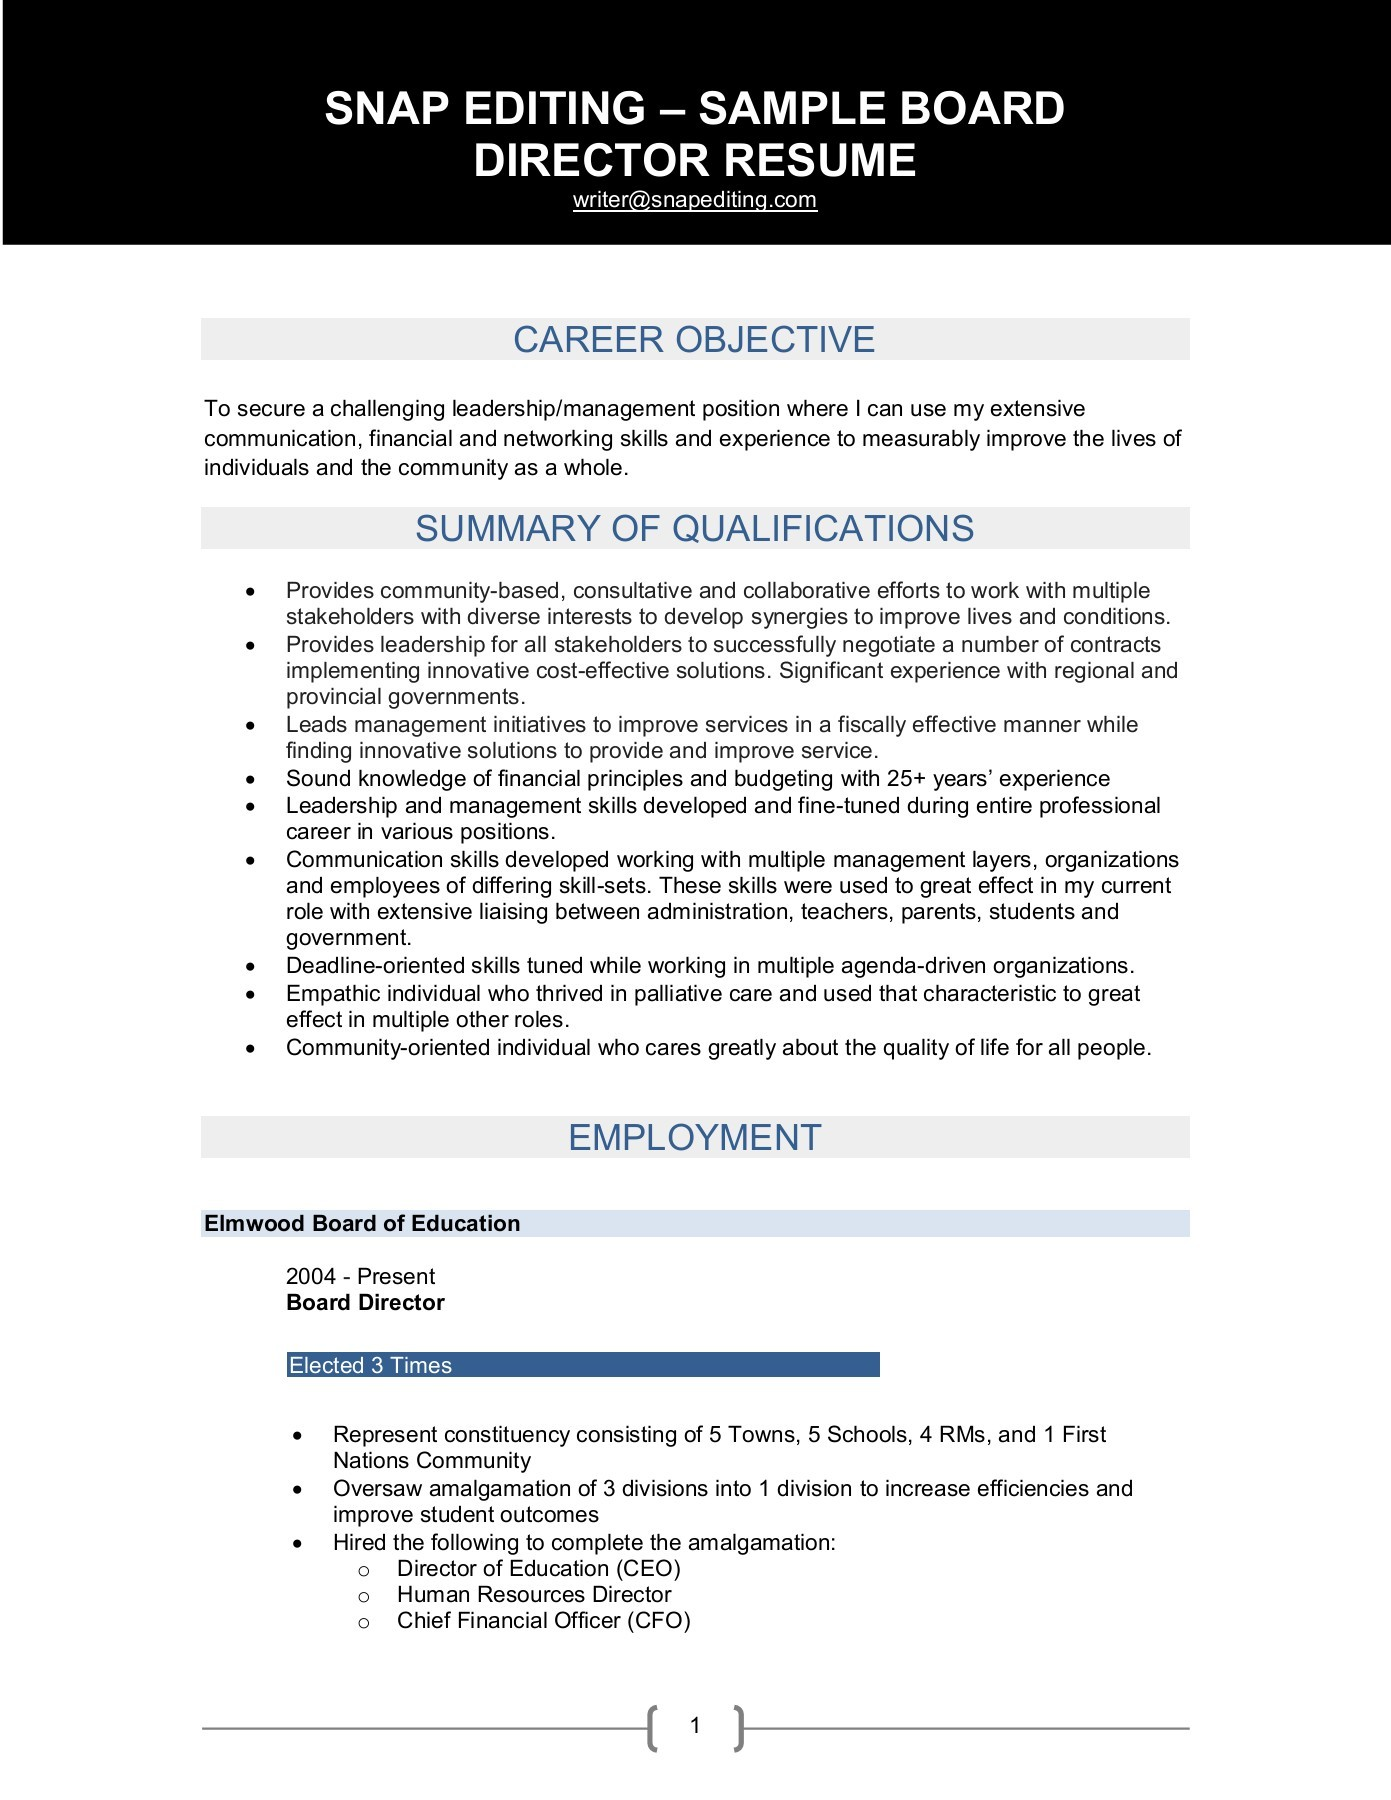 sample after board director resume for position investment banking law school template Resume Resume For Board Position Sample